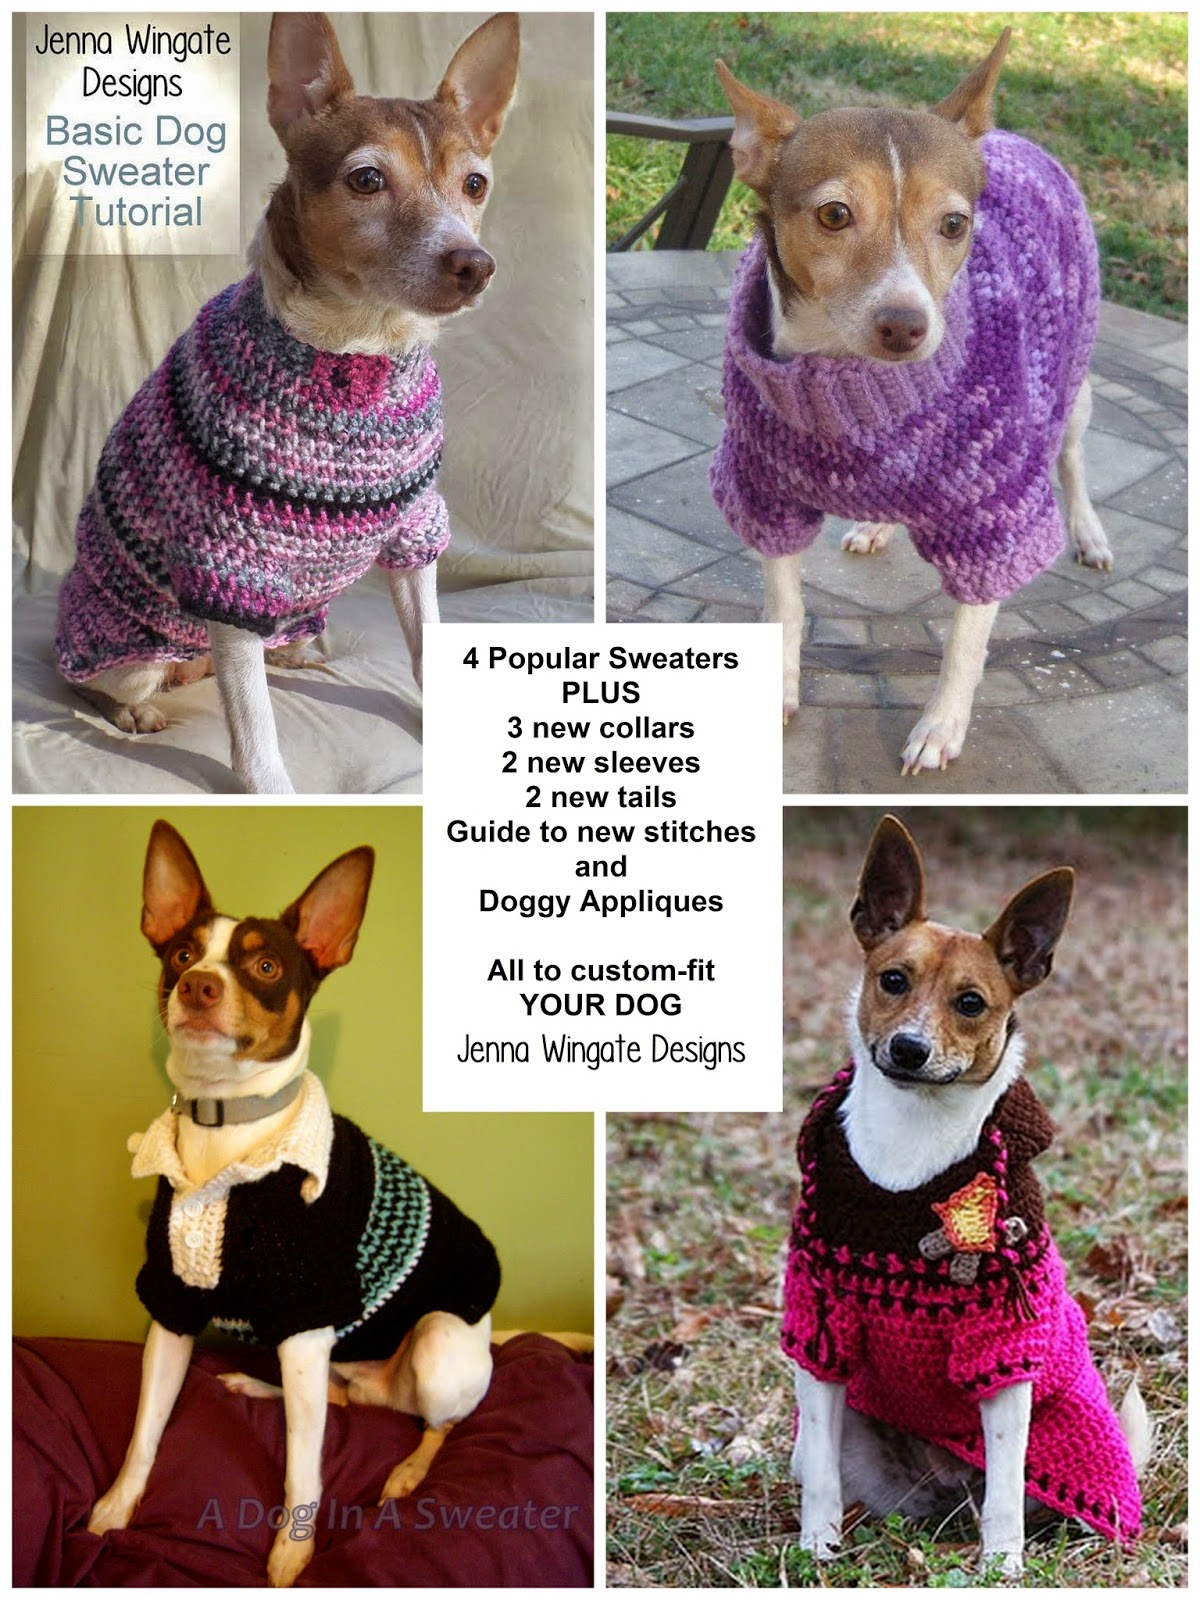 Jenna Wingate Designs Custom Fit Dog Sweater Ebook